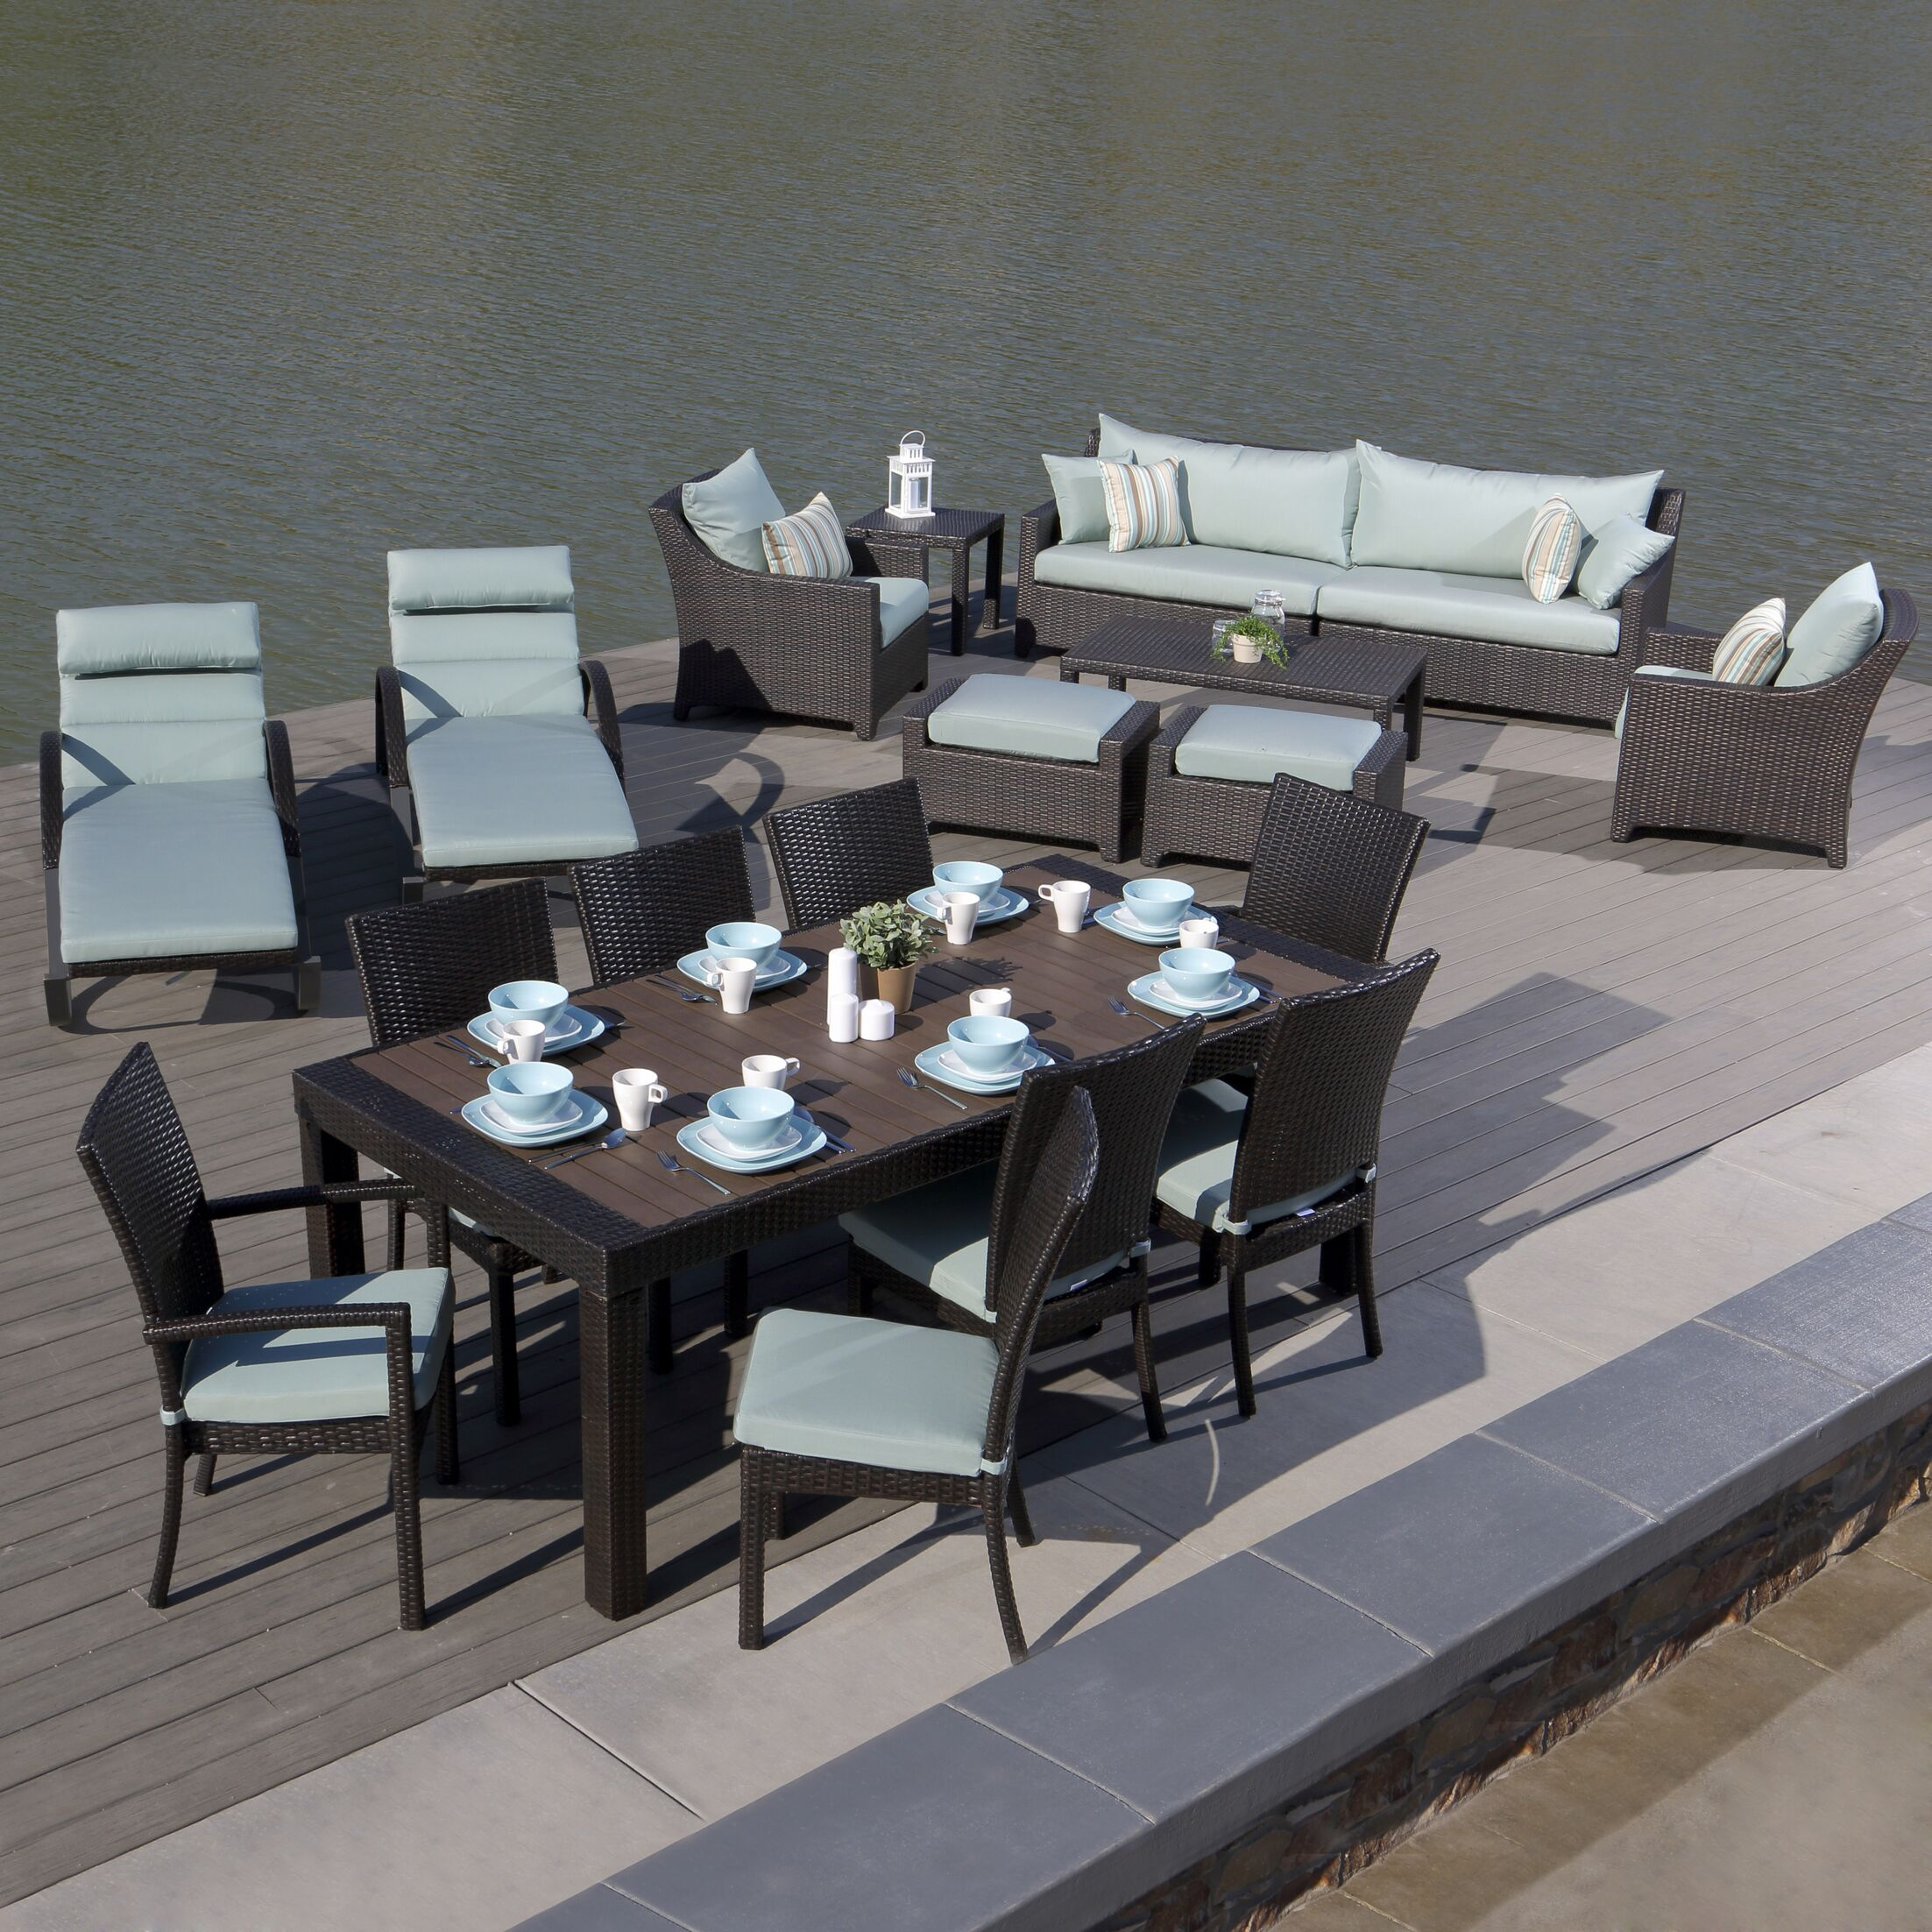 Northridge 19 Piece Complete Patio Set with Cushions